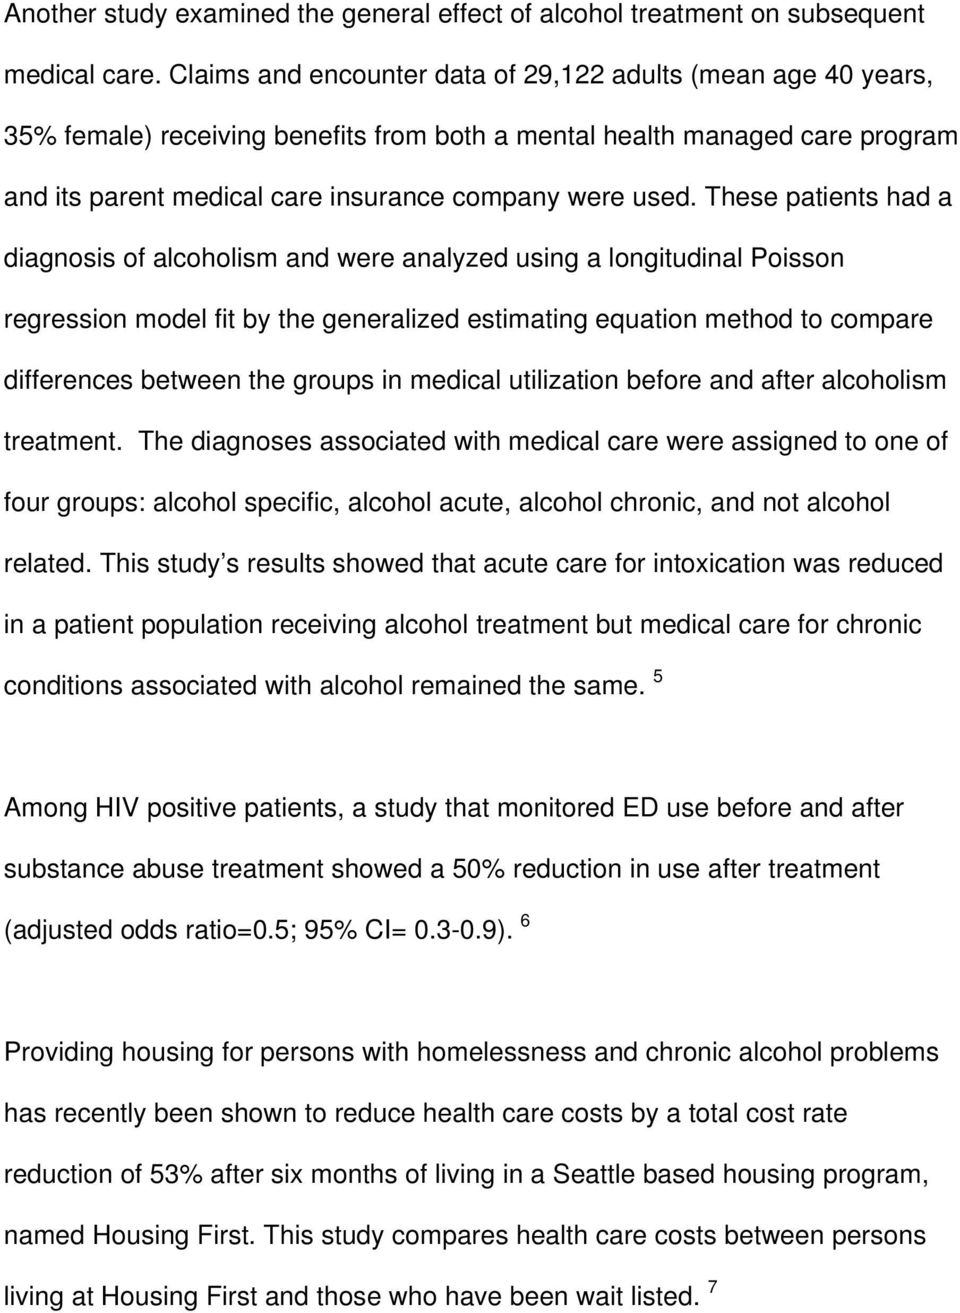 These patients had a diagnosis of alcoholism and were analyzed using a longitudinal Poisson regression model fit by the generalized estimating equation method to compare differences between the